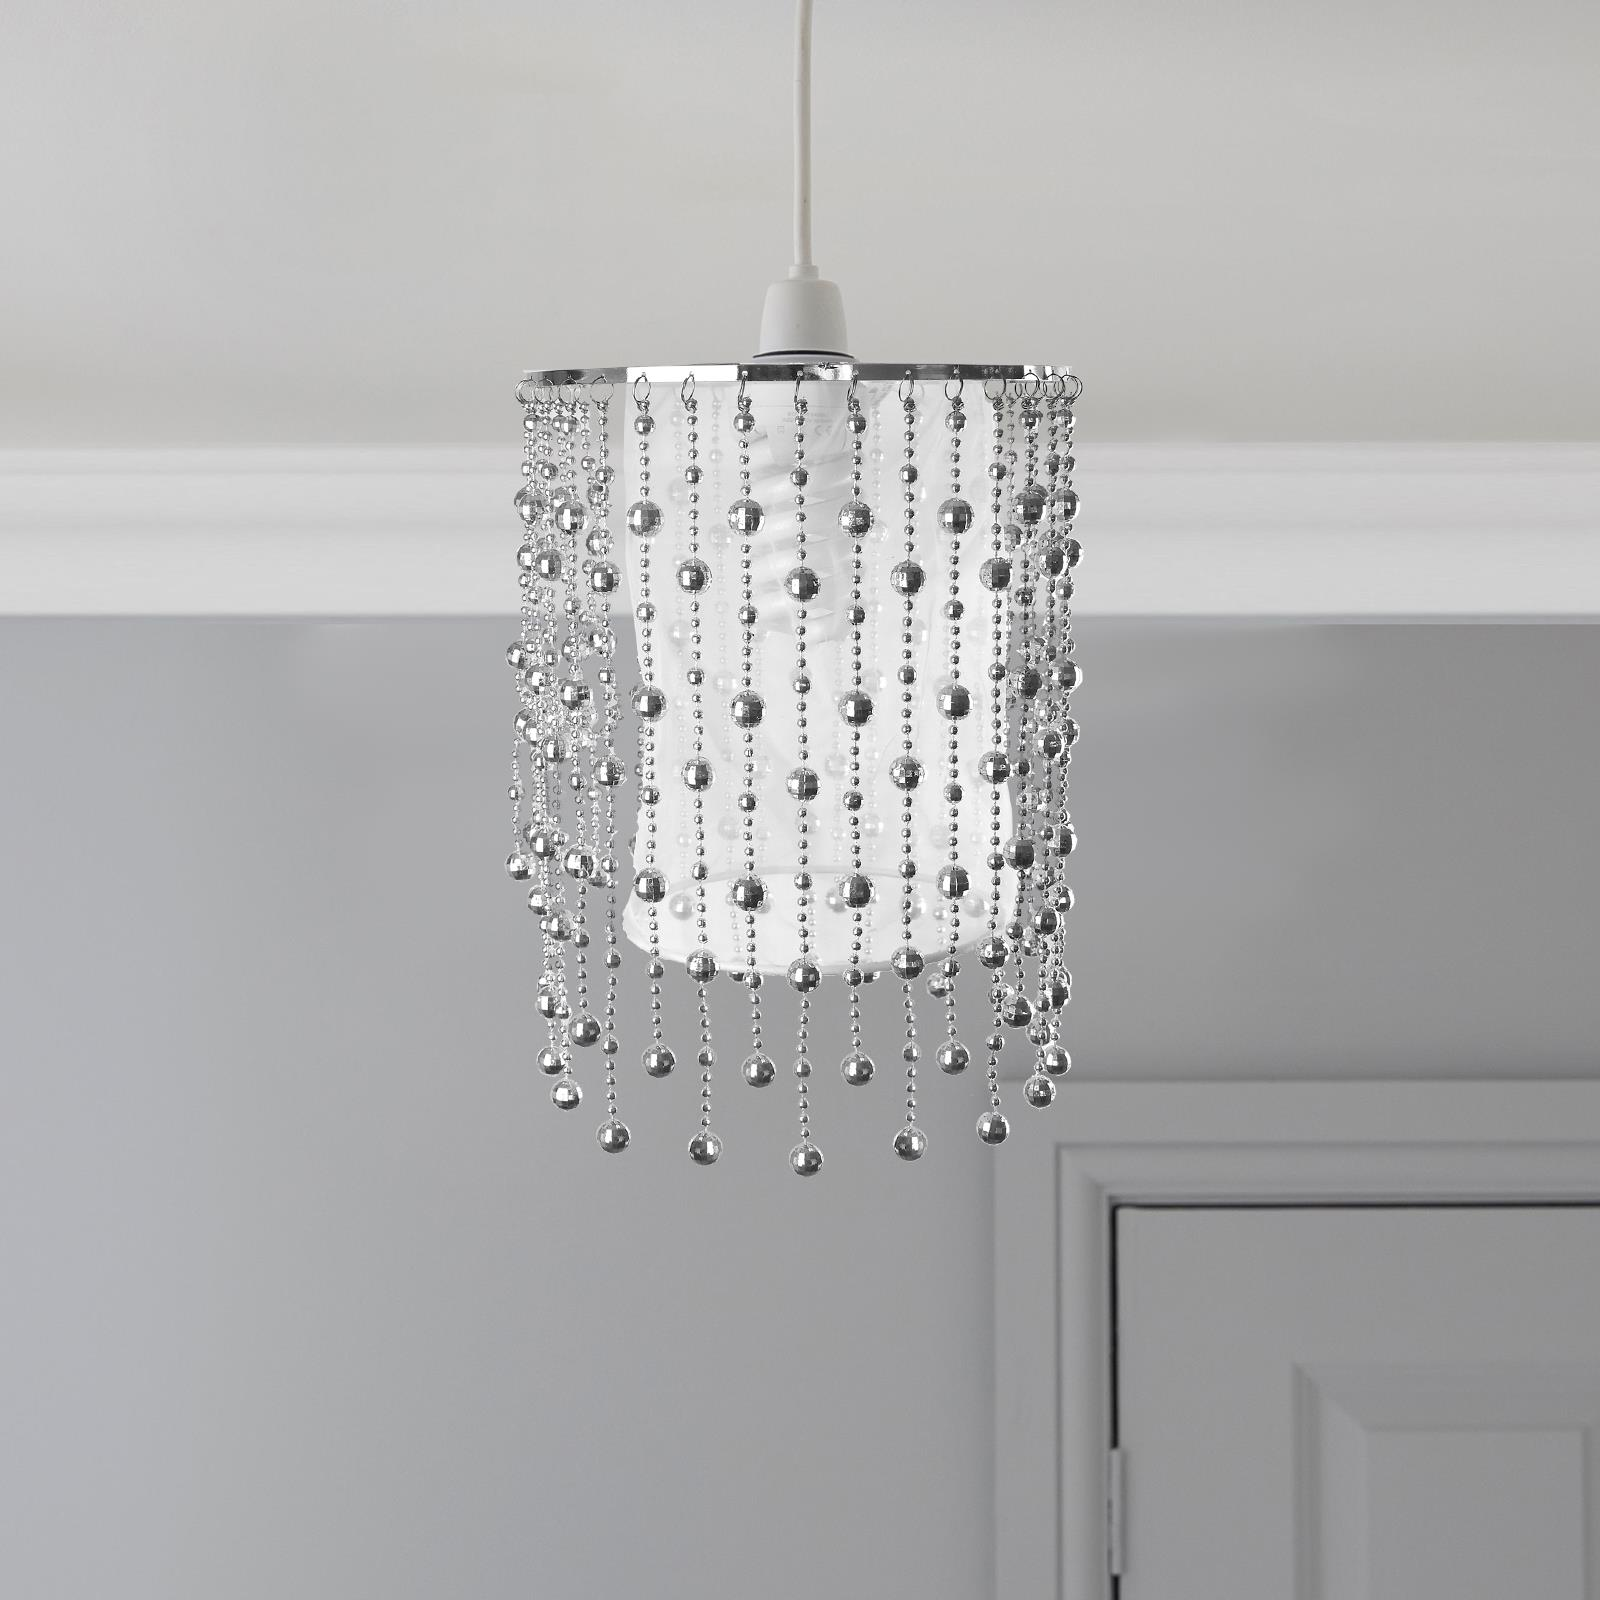 Modern-Chandelier-Style-Ceiling-Light-Lamp-Shade-Drop-Pendant-Acrylic-Crystal thumbnail 36